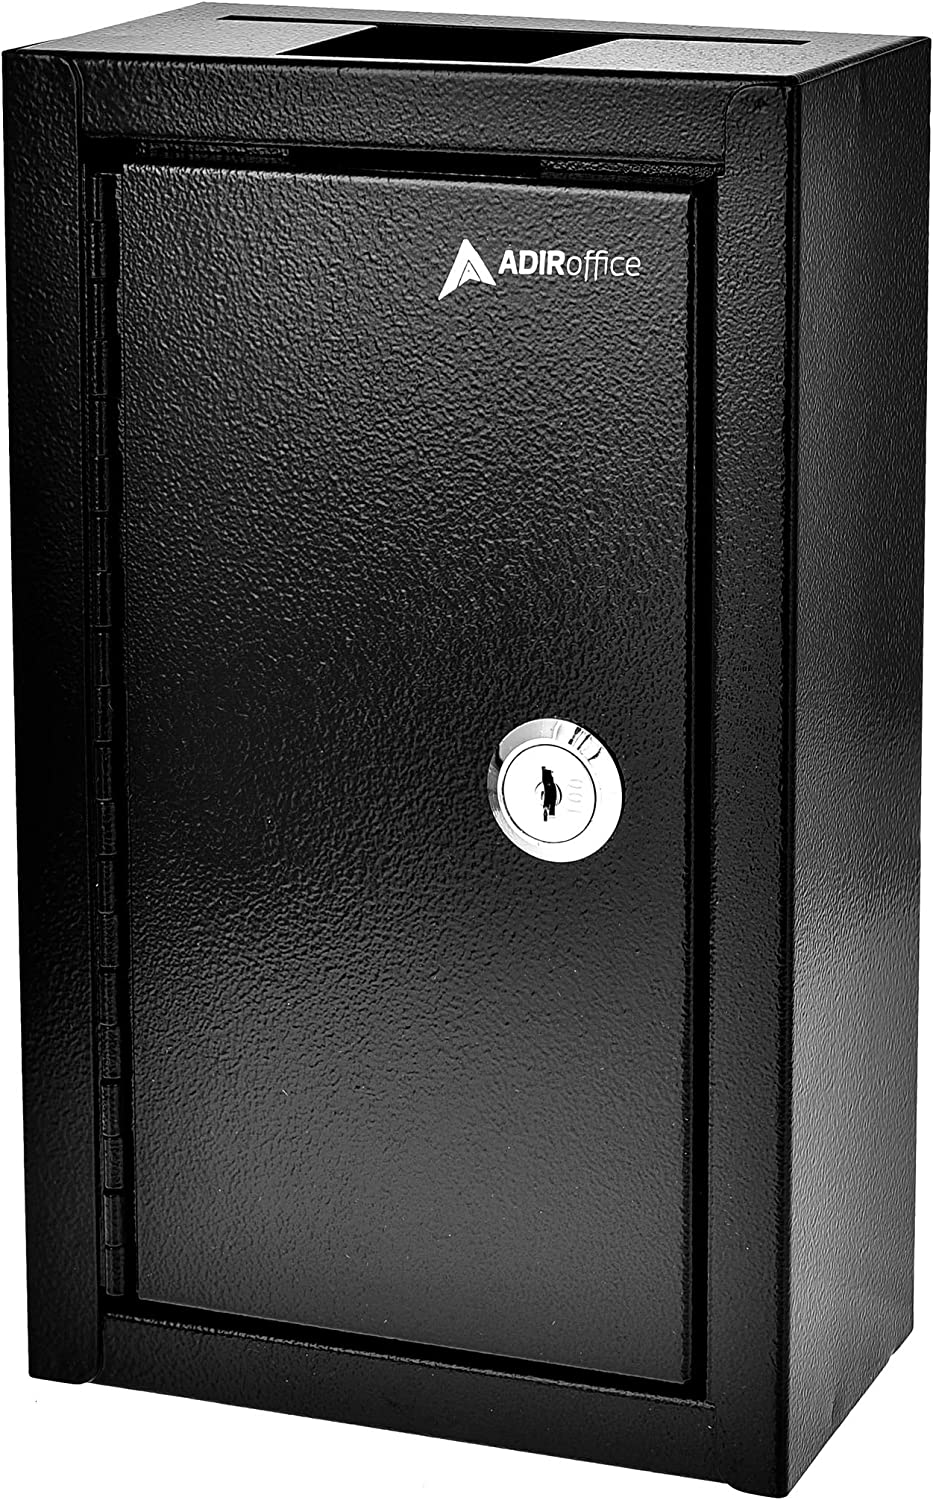 AdirOffice Large Key Drop Box – Large Capacity Commercial Grade Storage Box – Safe & Secure Parcel & Packages - for Home & Business Use (Black)